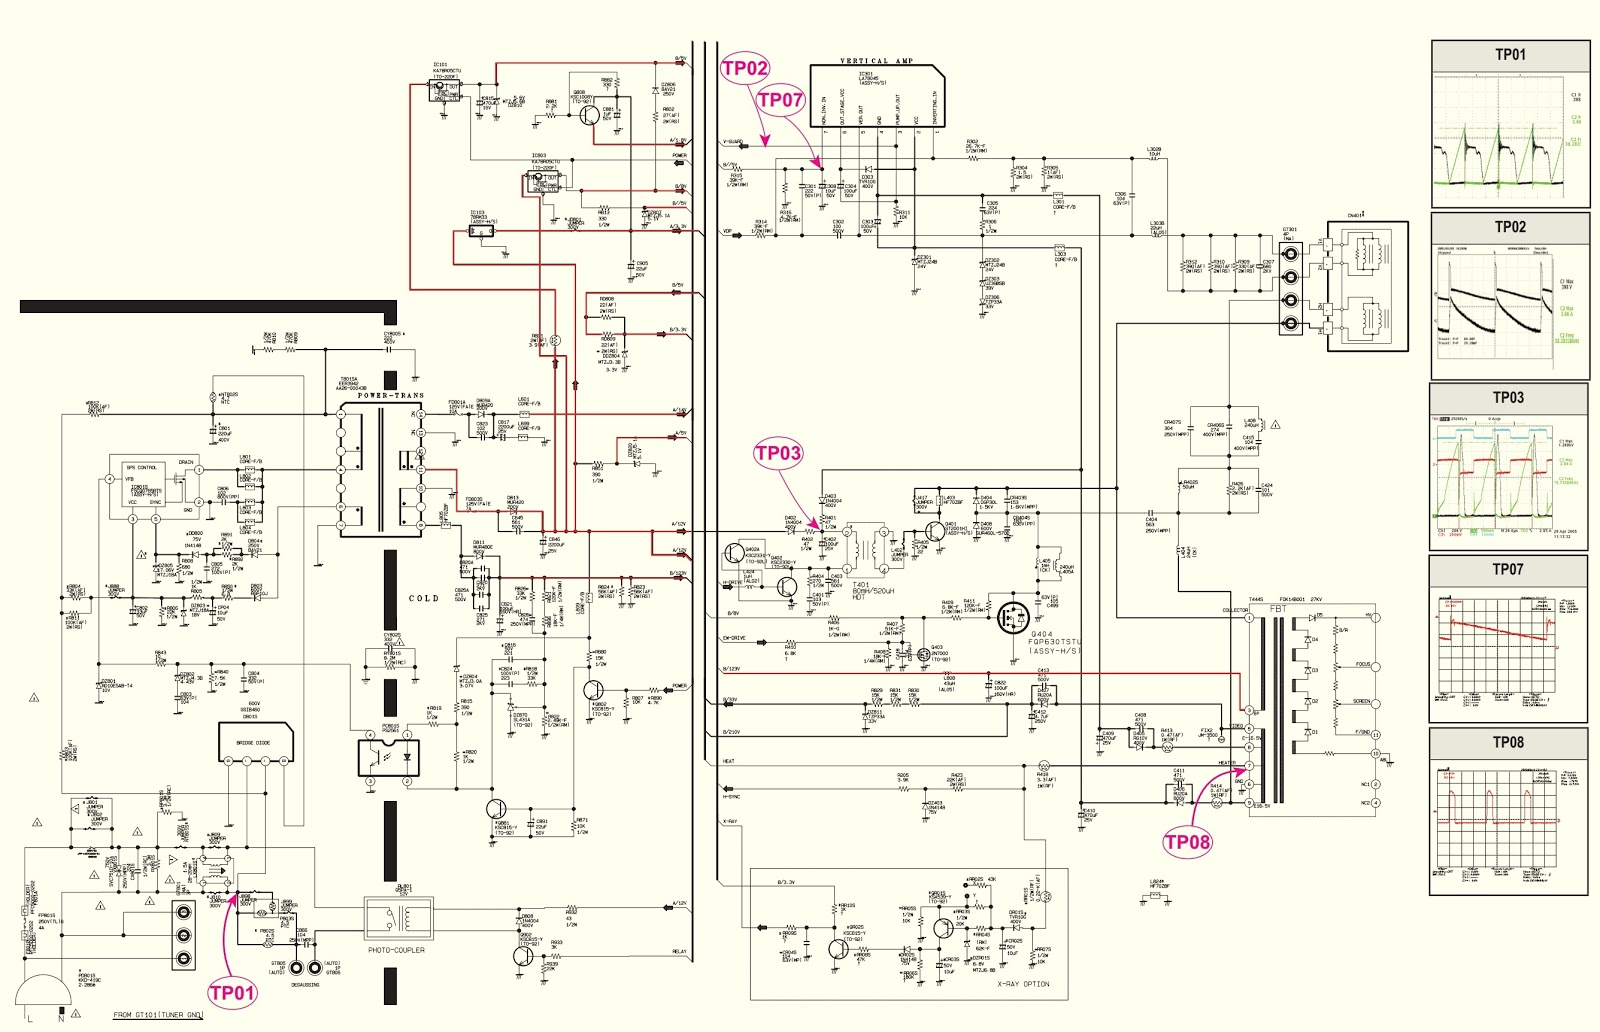 samsung cl21z43mq slim tv circuit diagram schematic diagrams rh schematicscom blogspot com samsung s7580 schematic diagram samsung mobile schematic diagram free download